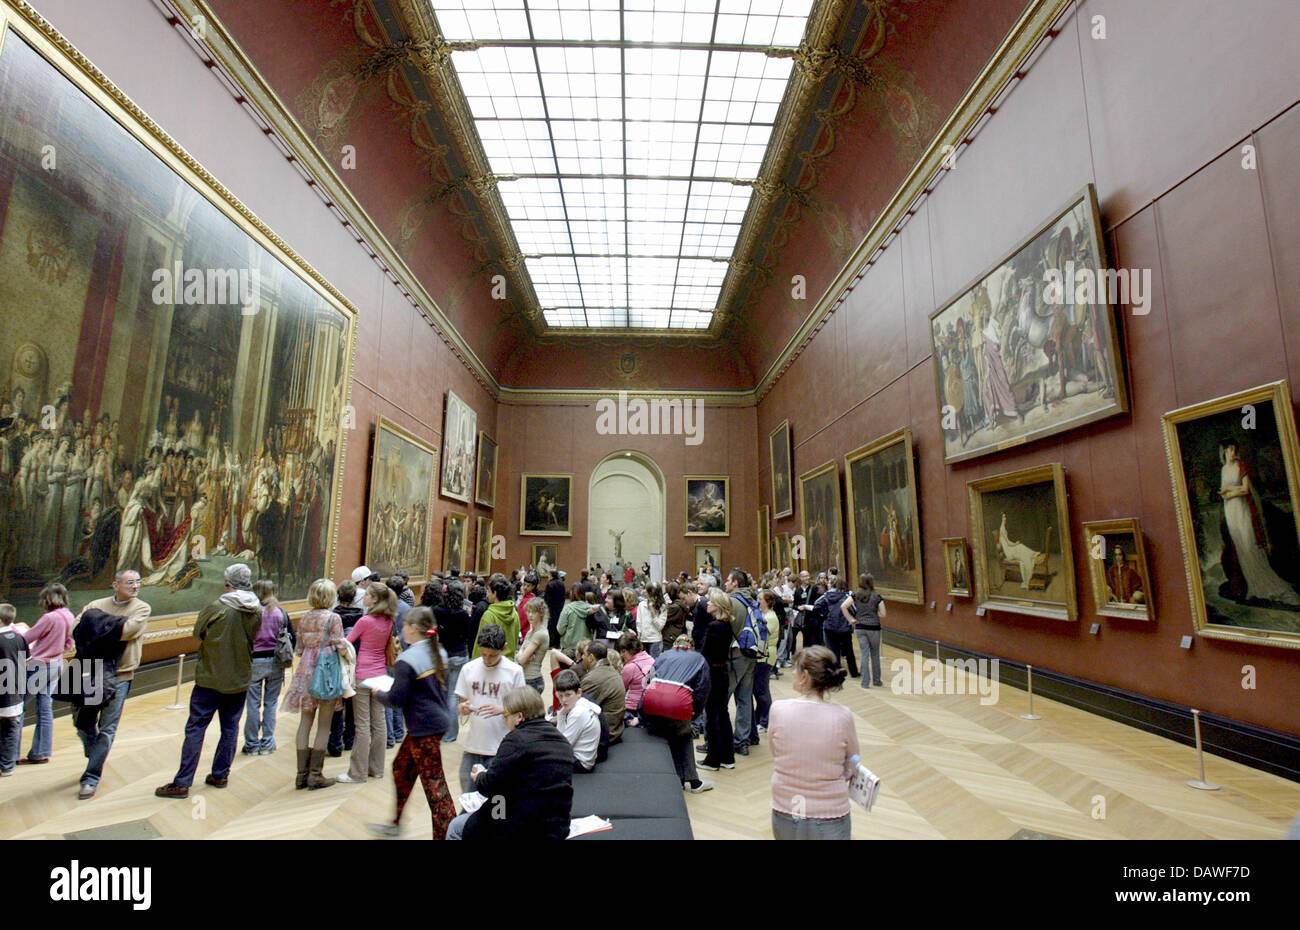 Numerous visitors look at large oil paintings in the Louvre in Paris, France, Monday, 26 March 2007. The former - Stock Image